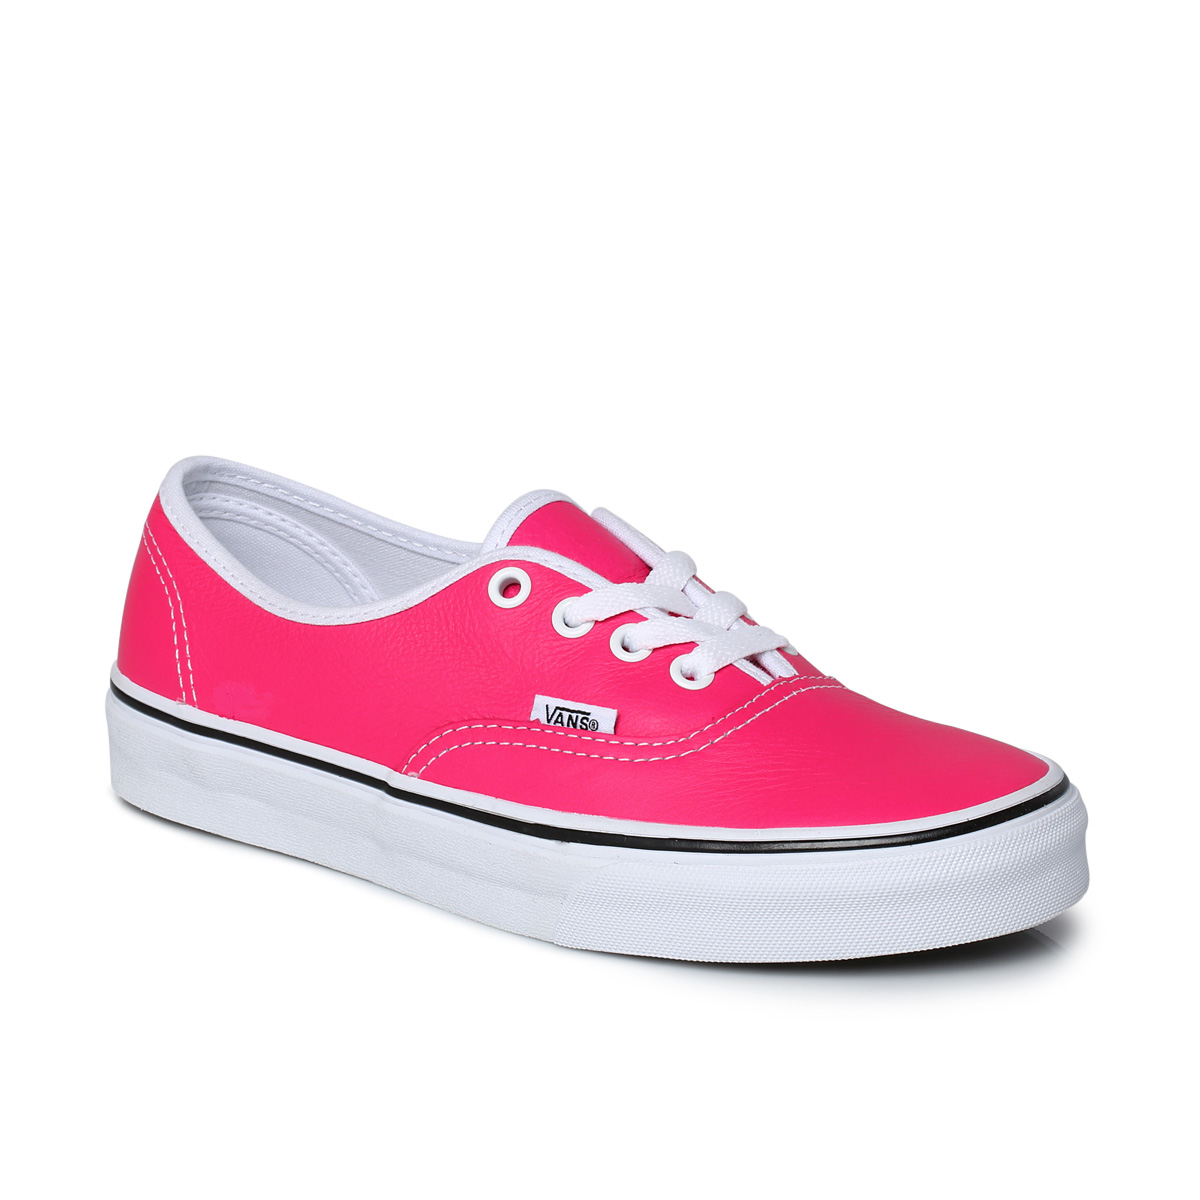 vans authentic neon pink leather womens sneaker trainers